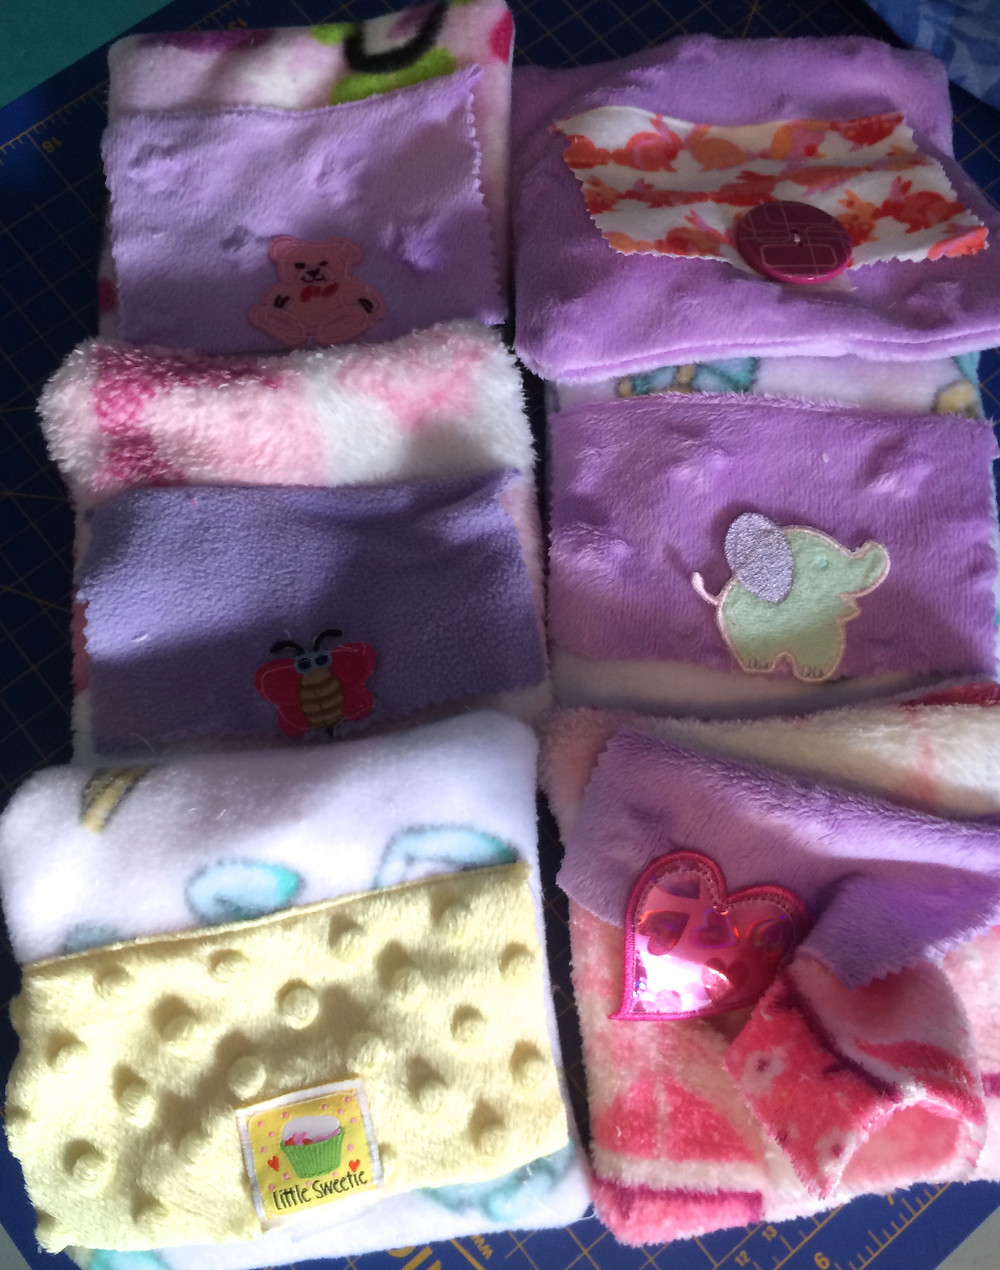 Doll wipes cases with wipes